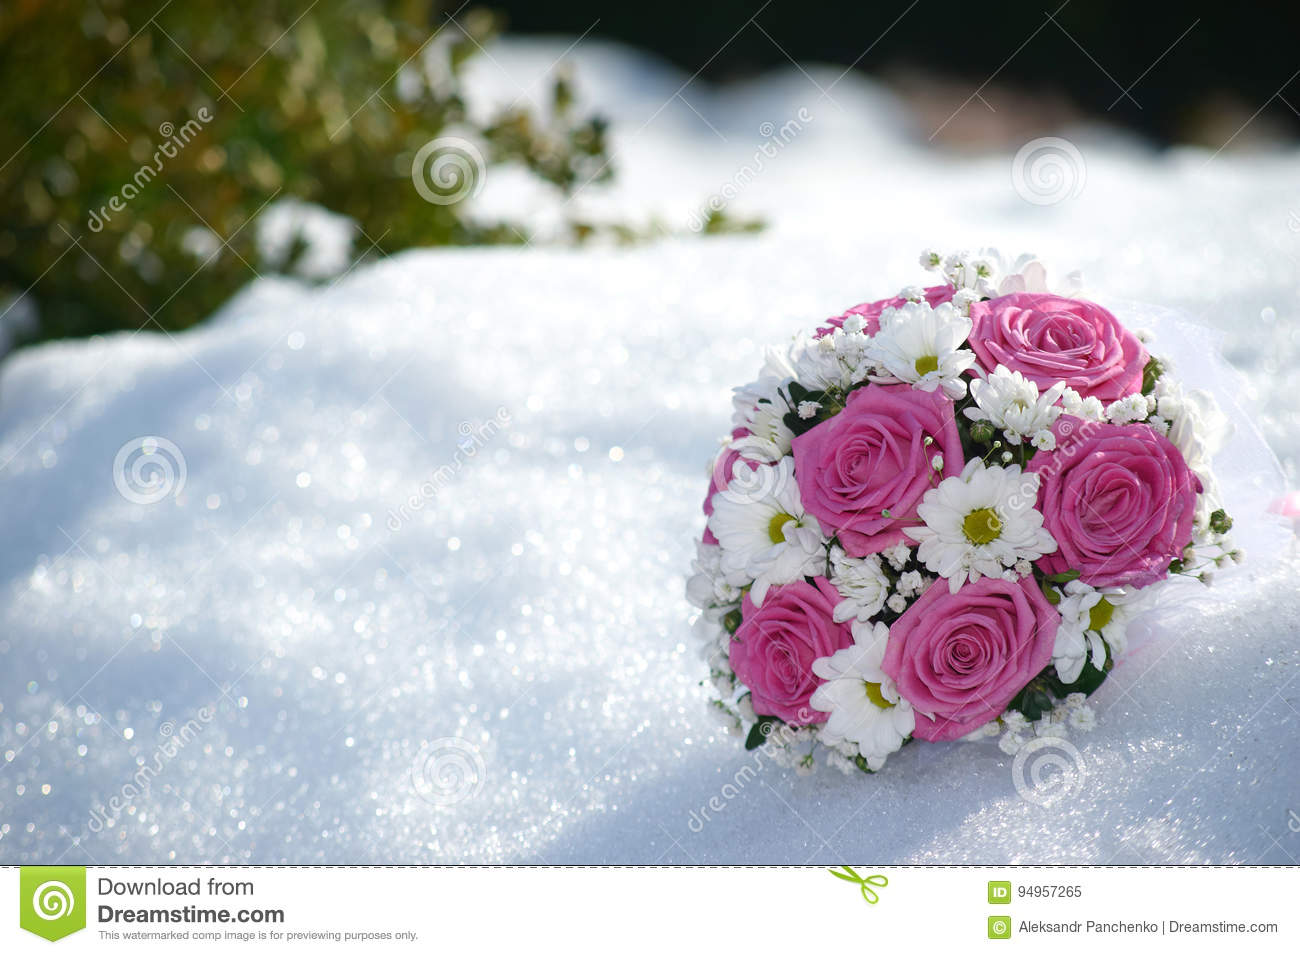 Bridal Bouquet Of Pink Roses And White Daisies Flowers In The Sn